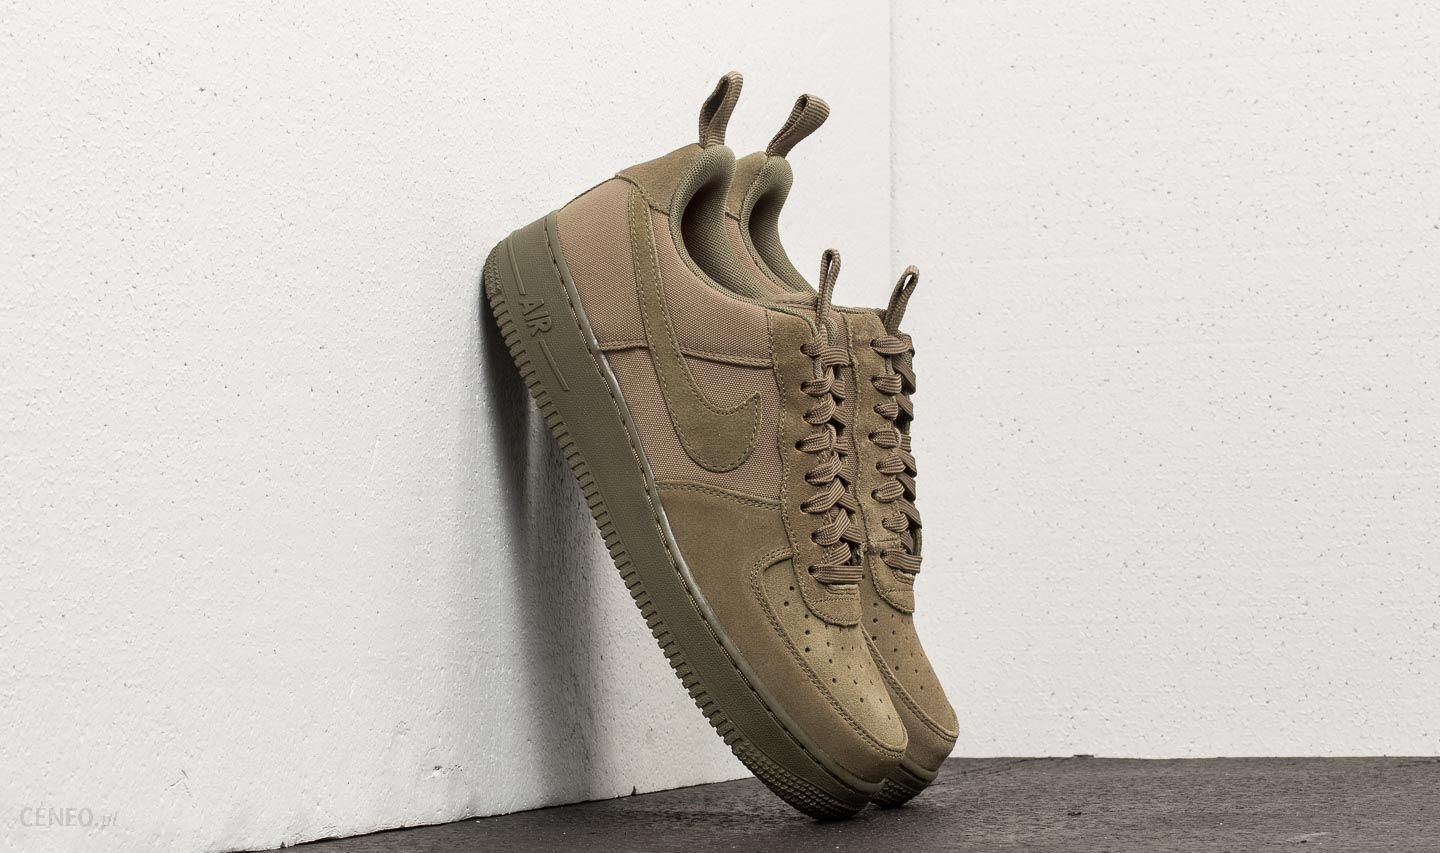 Nike Lunar Force 1 Duckboot Low Olive Canvas Olive Canvas